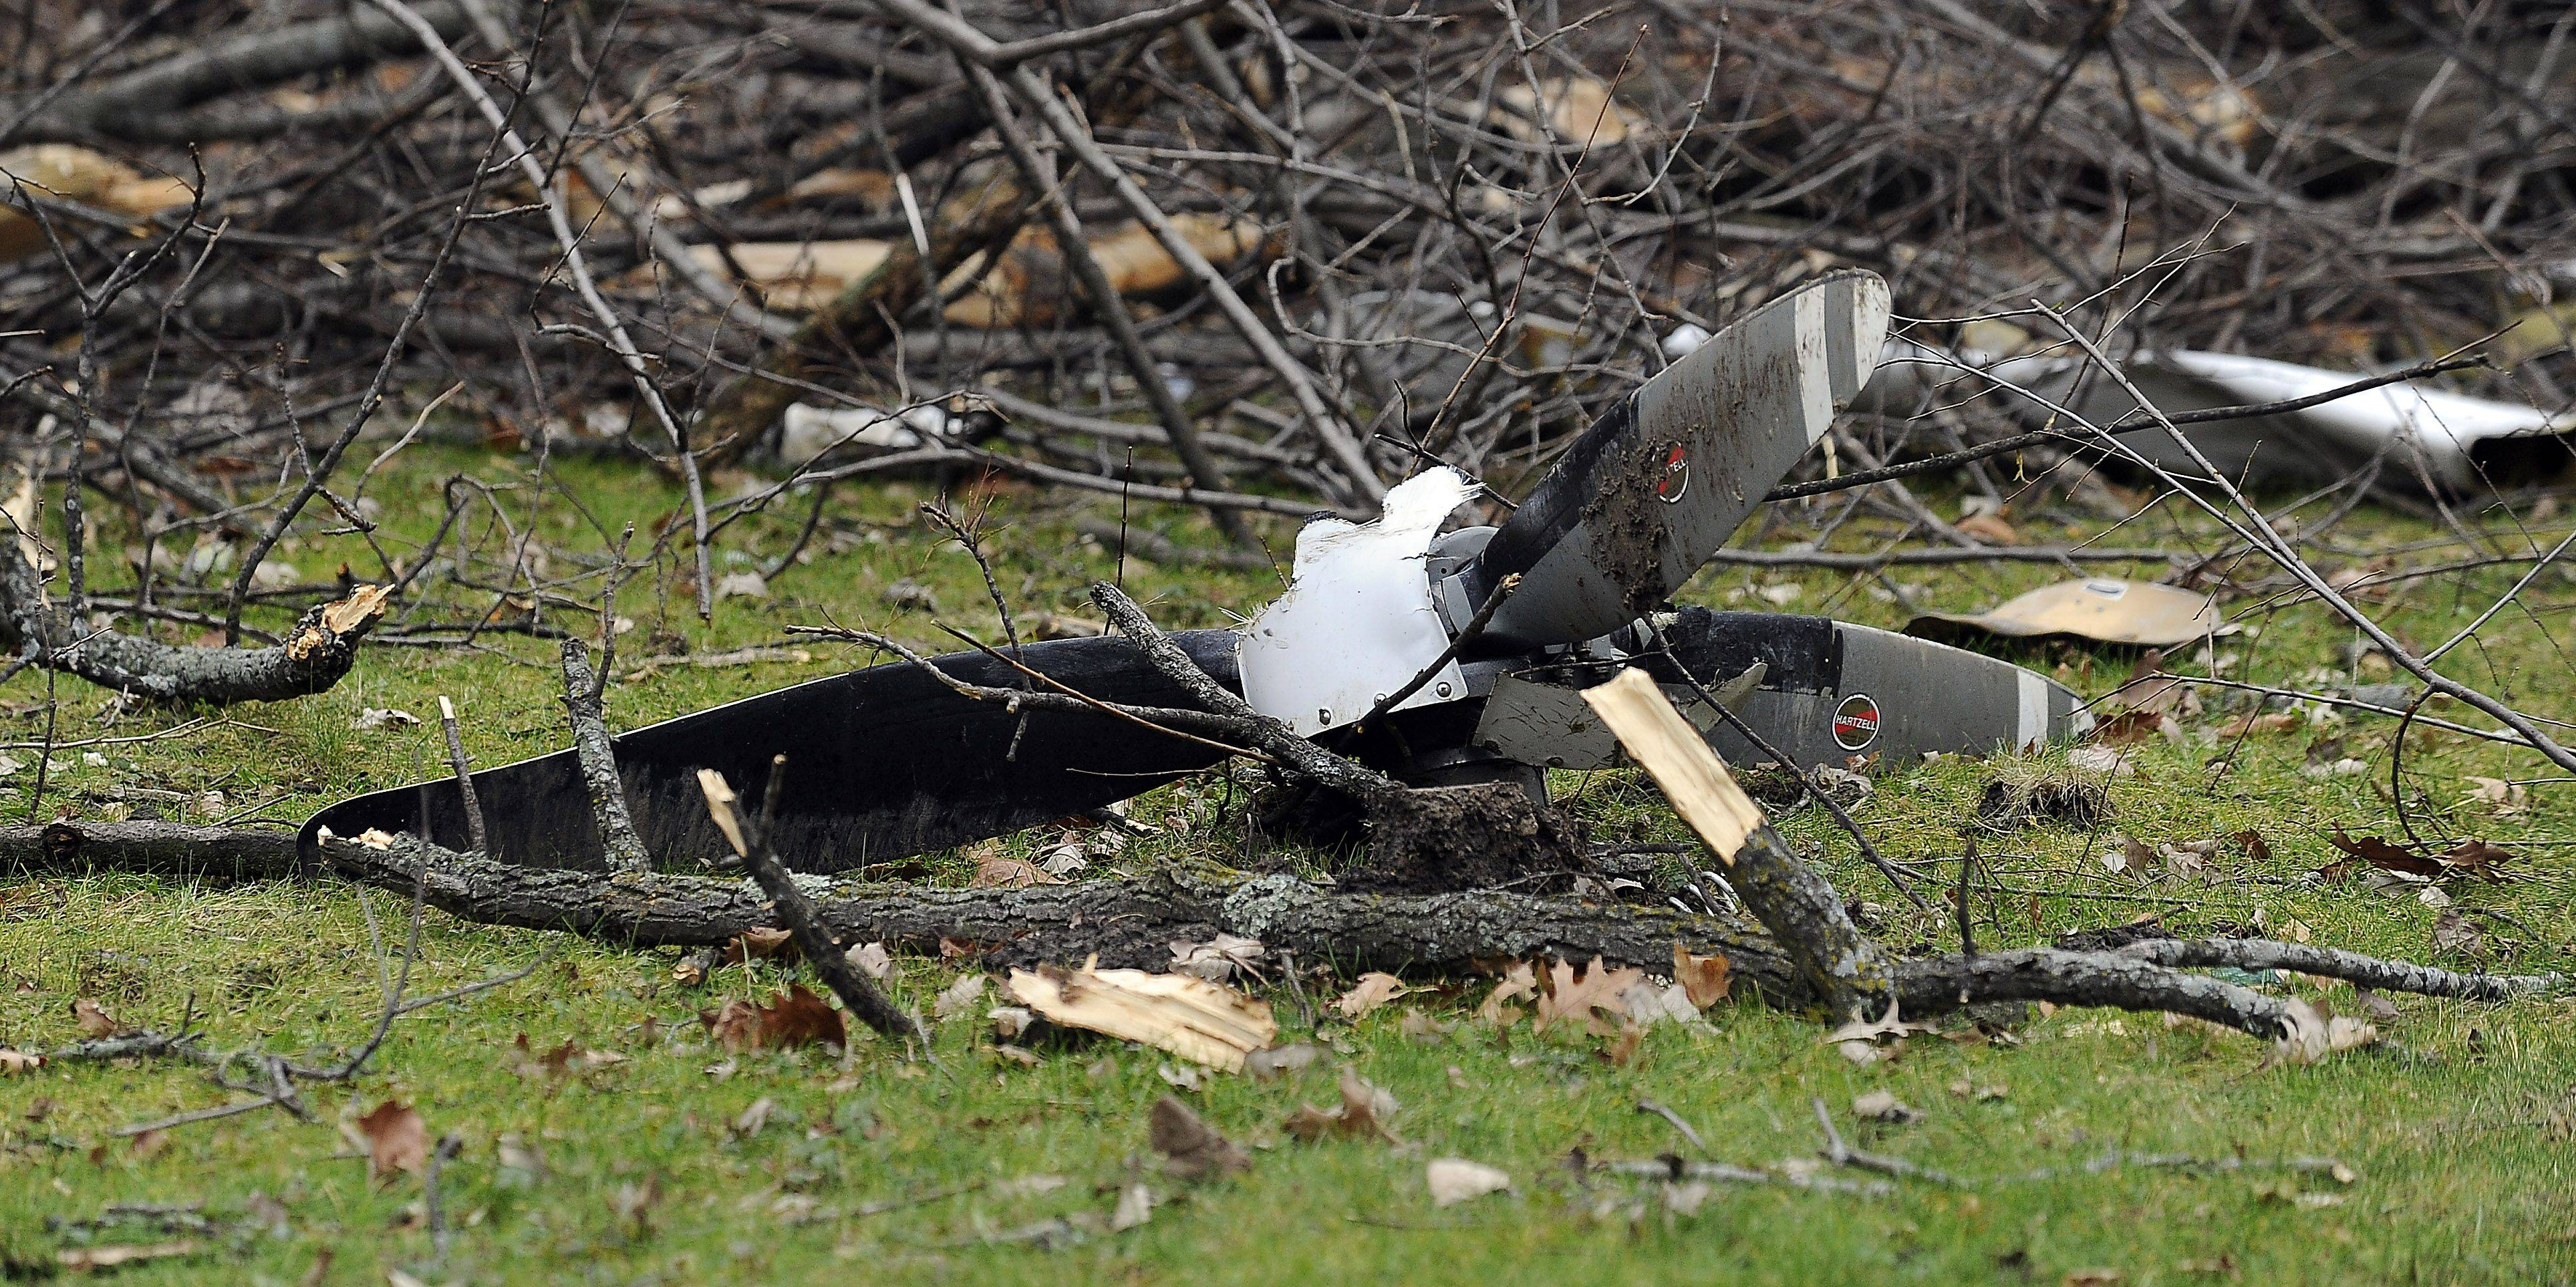 The site of the Riverwoods plane crash Tuesday that killed three people Monday night.